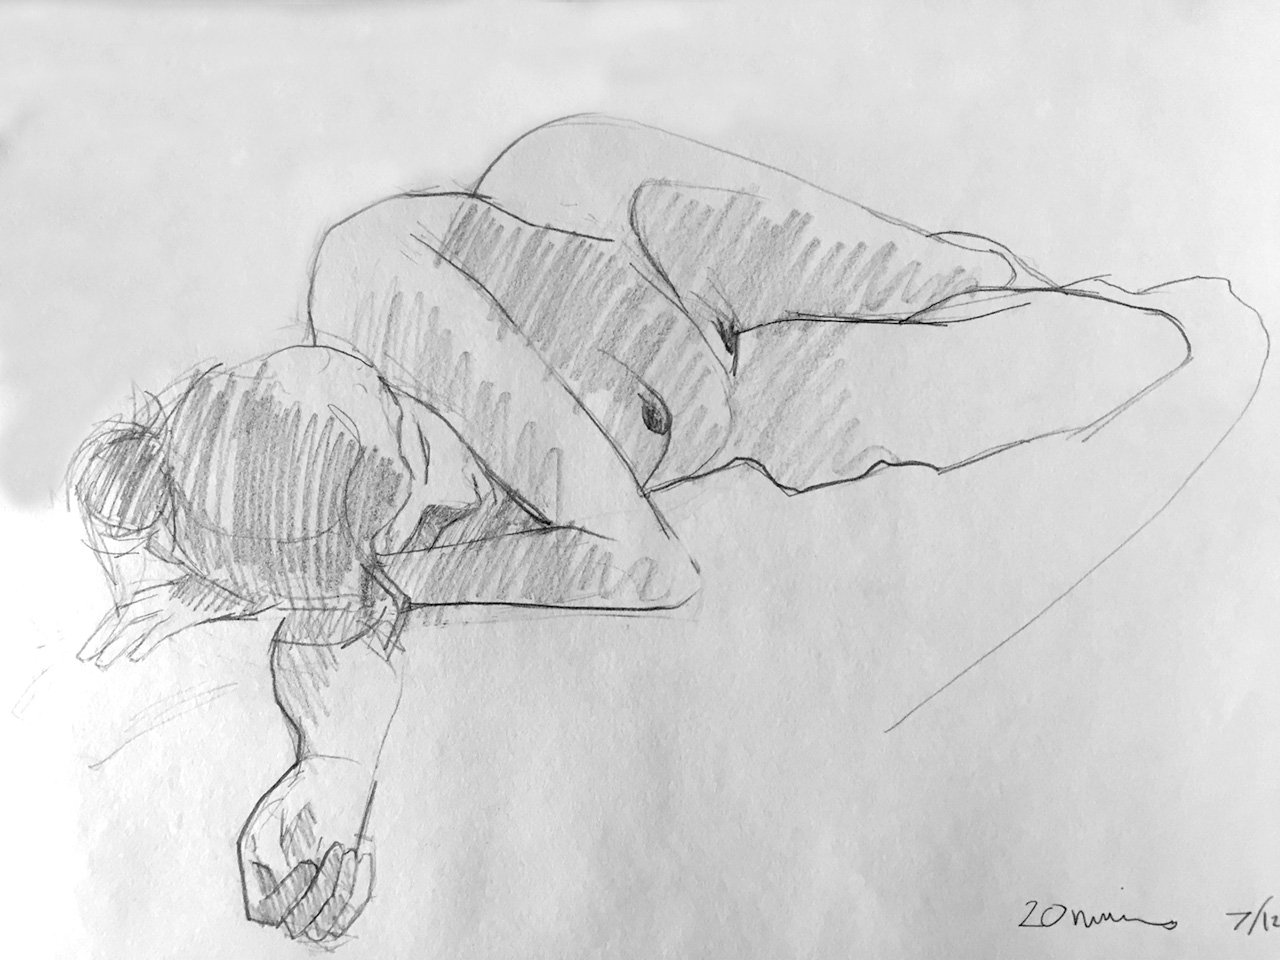 Life Drawing Sketch 2, Session 7/12/17